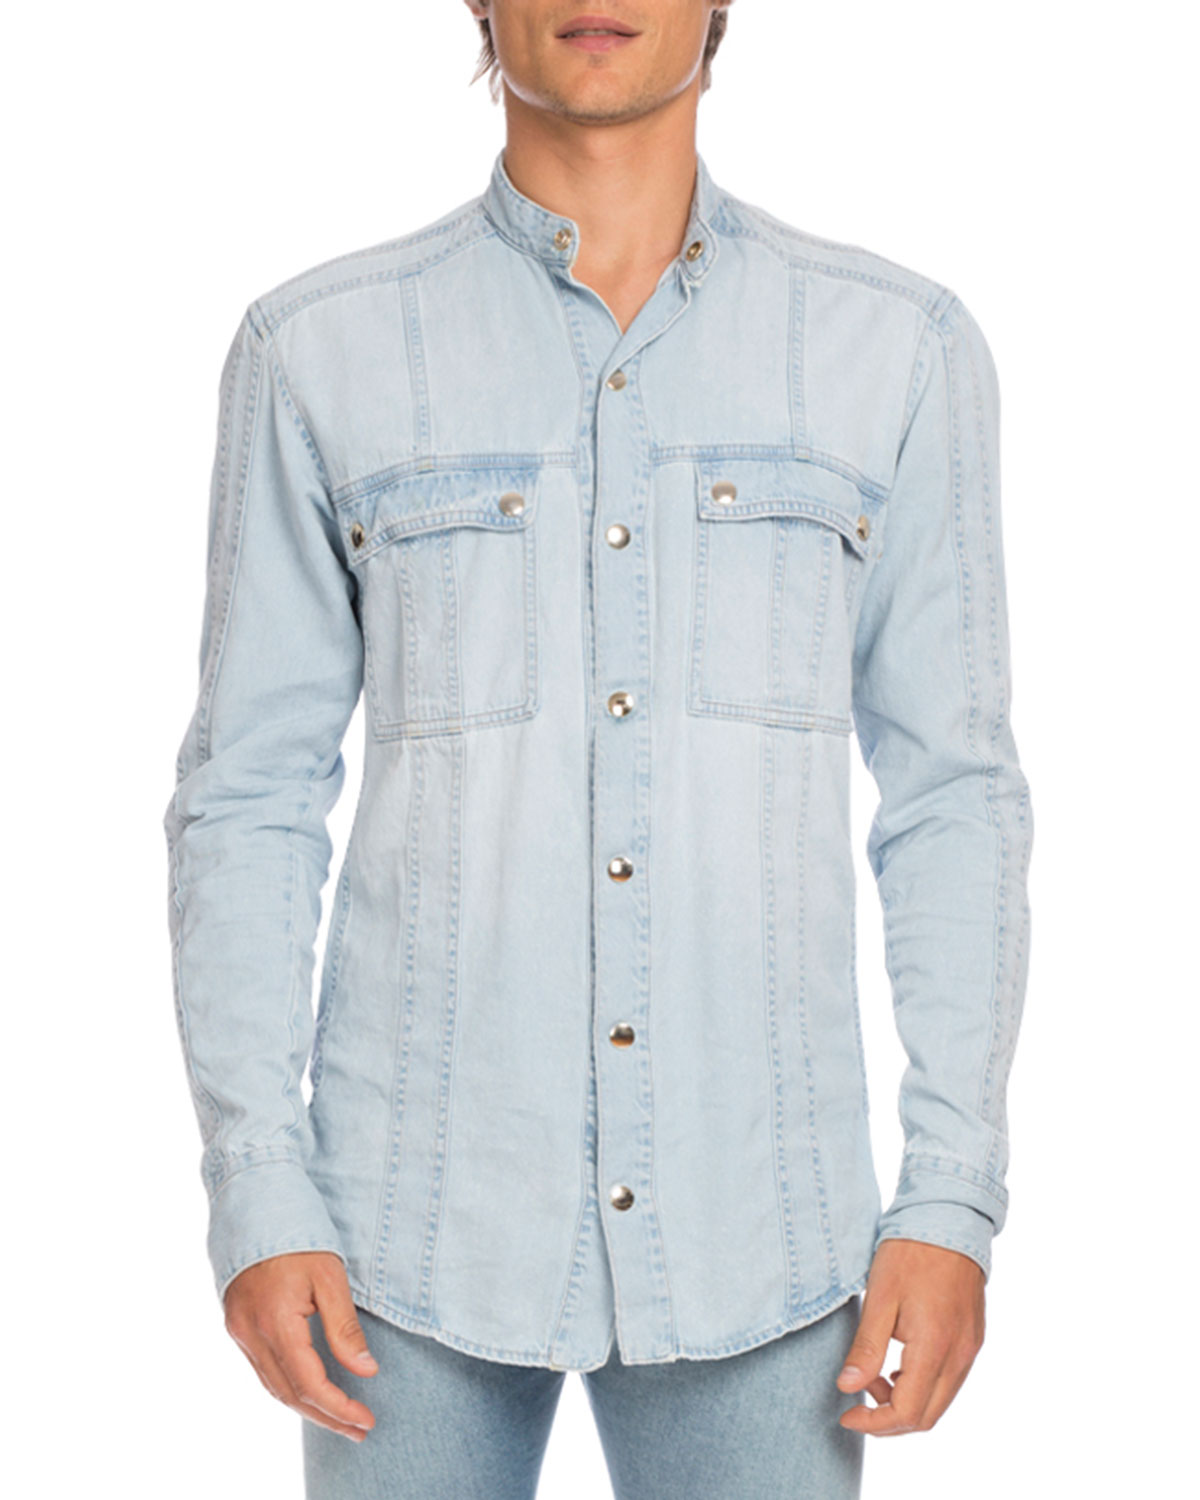 Denim Shirt with Beaded Arm Patch, Light Blue